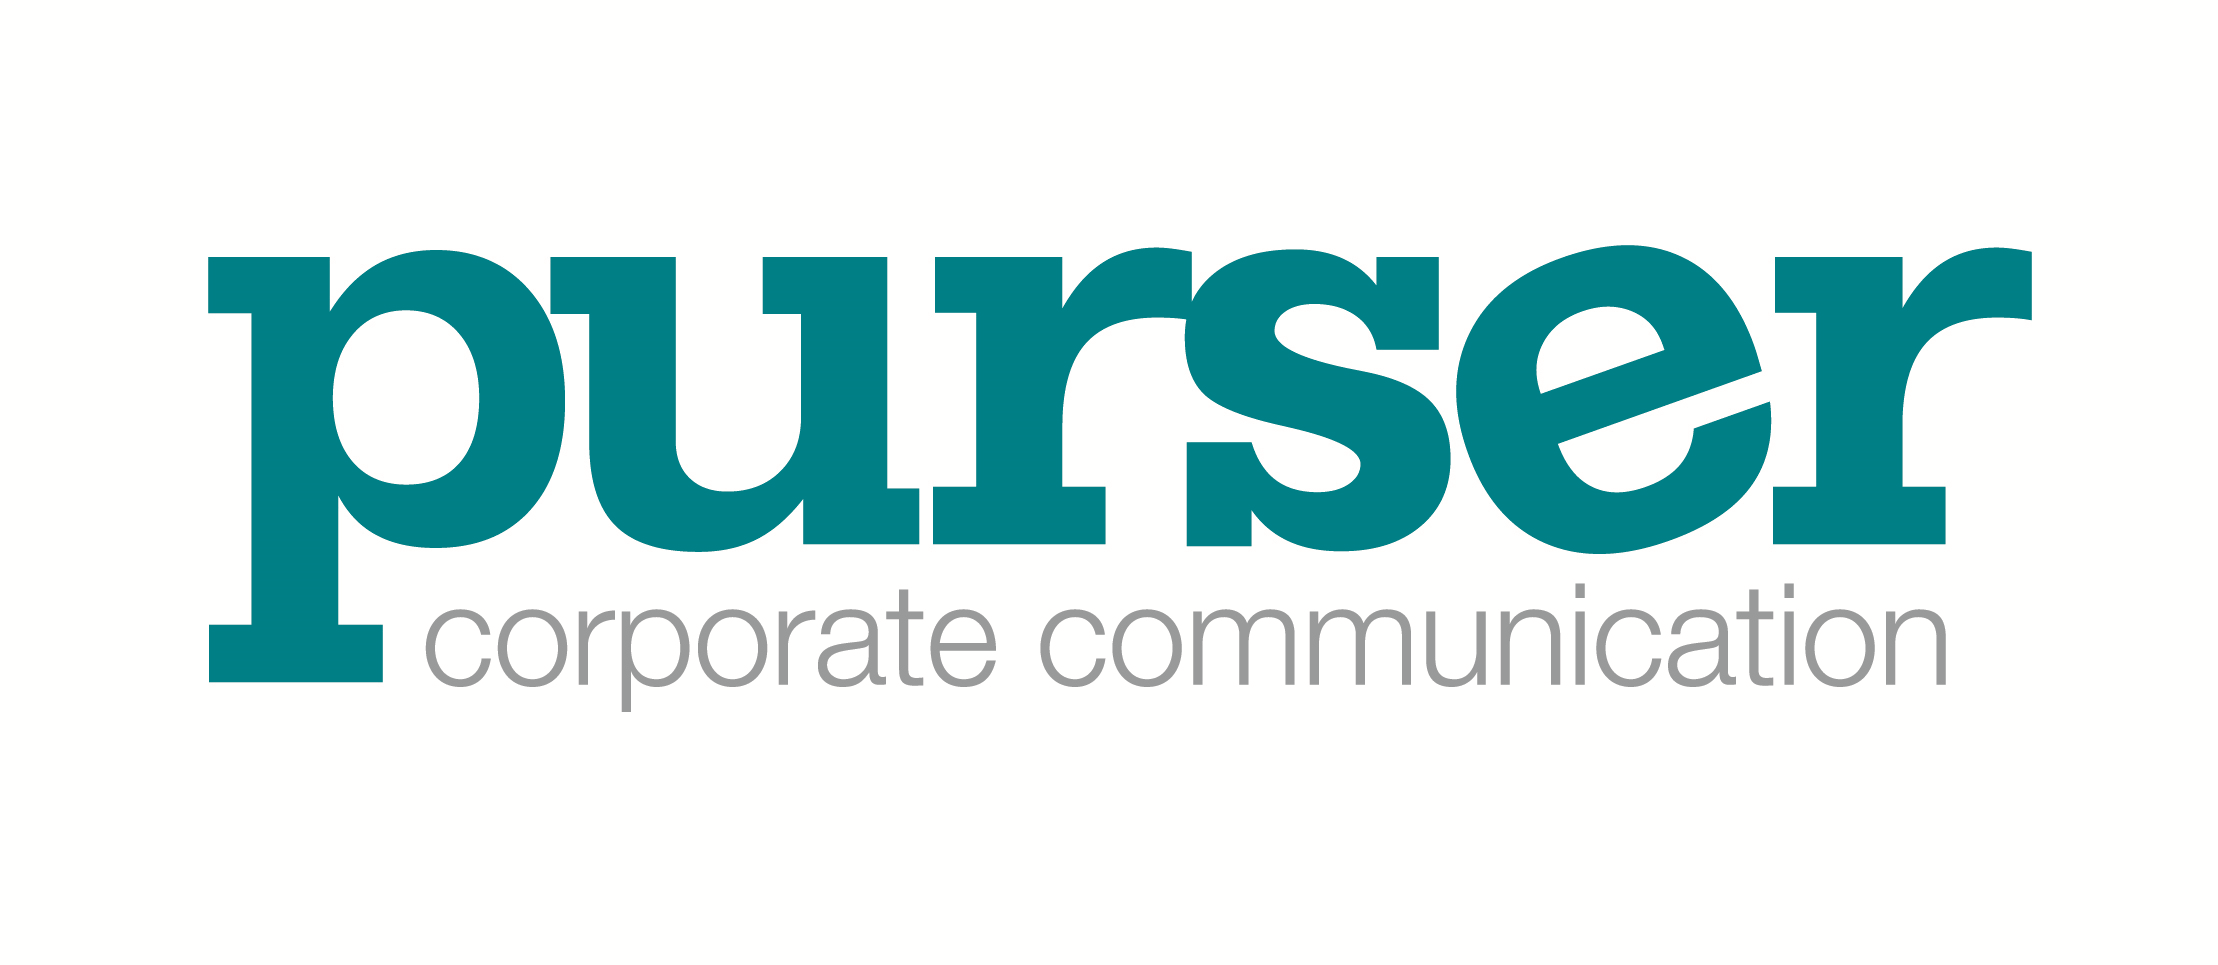 Purser Corporate Communication